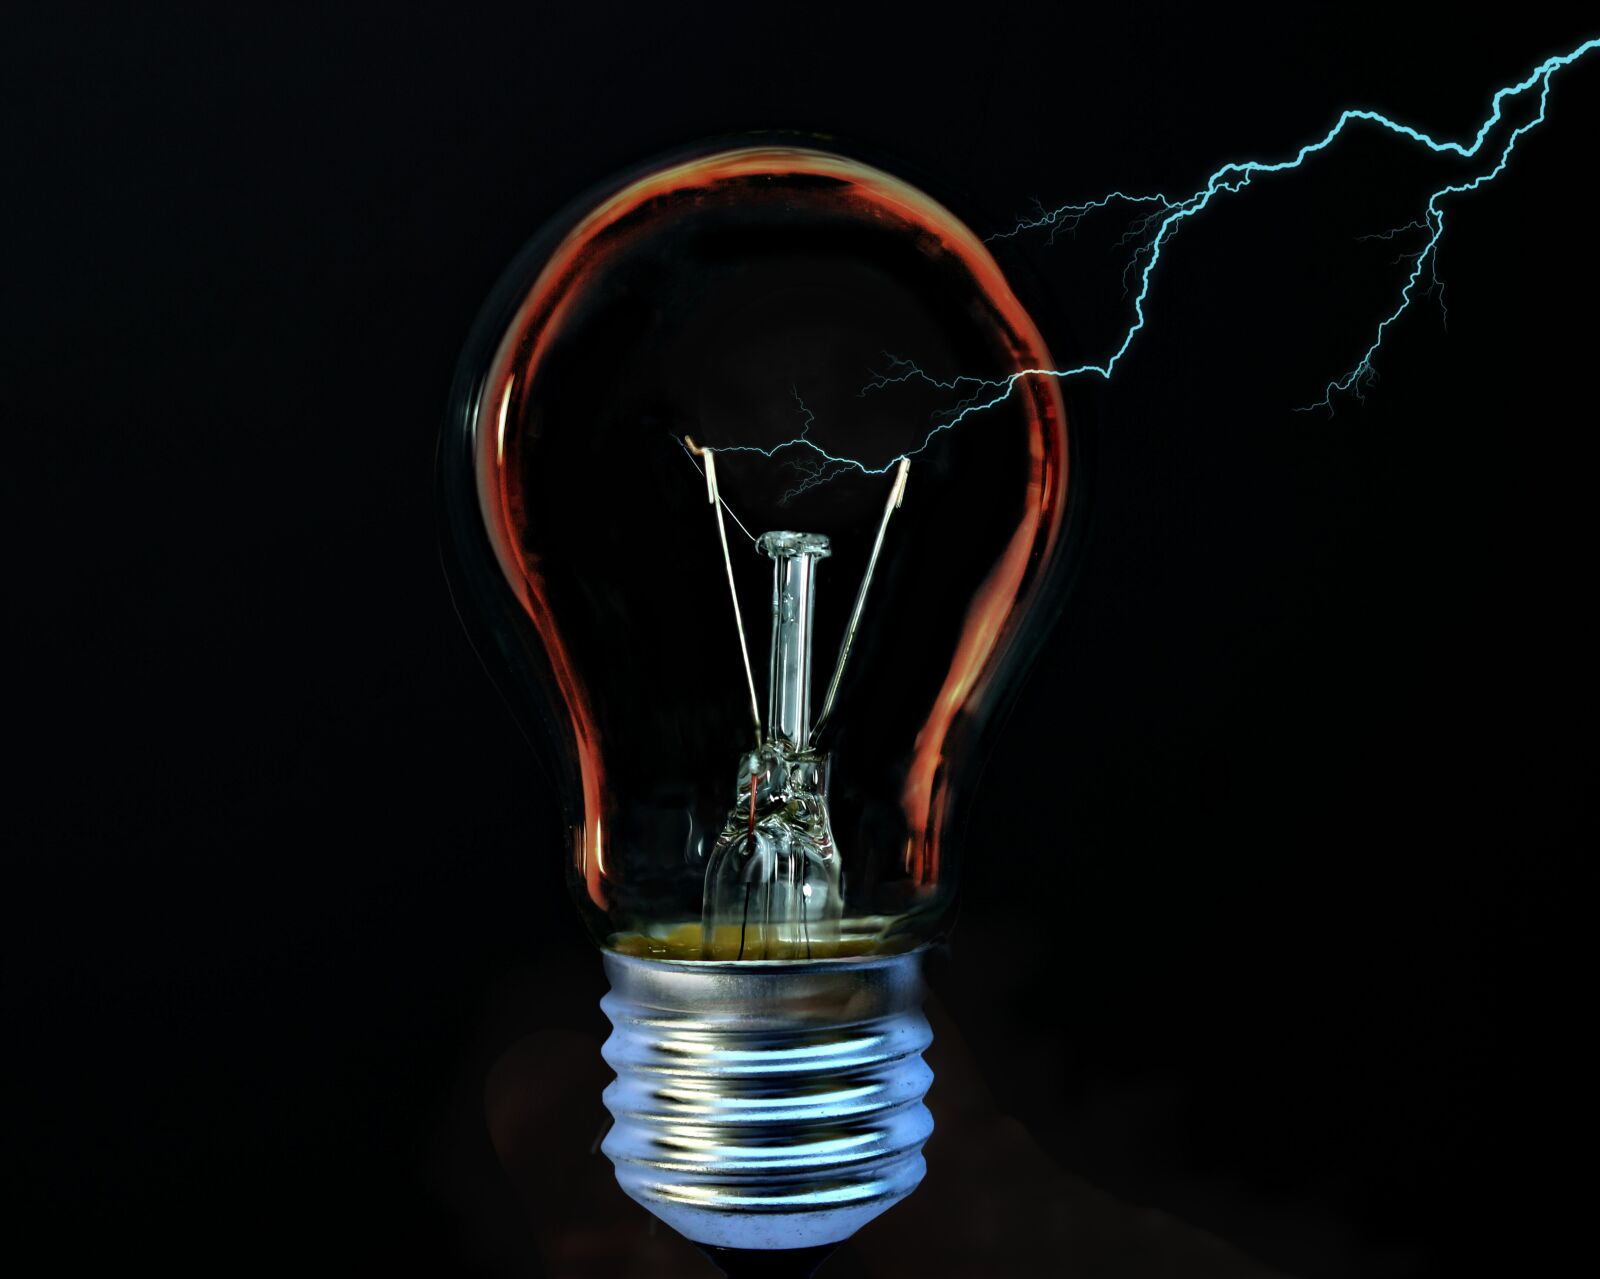 light bulb, current, flashes